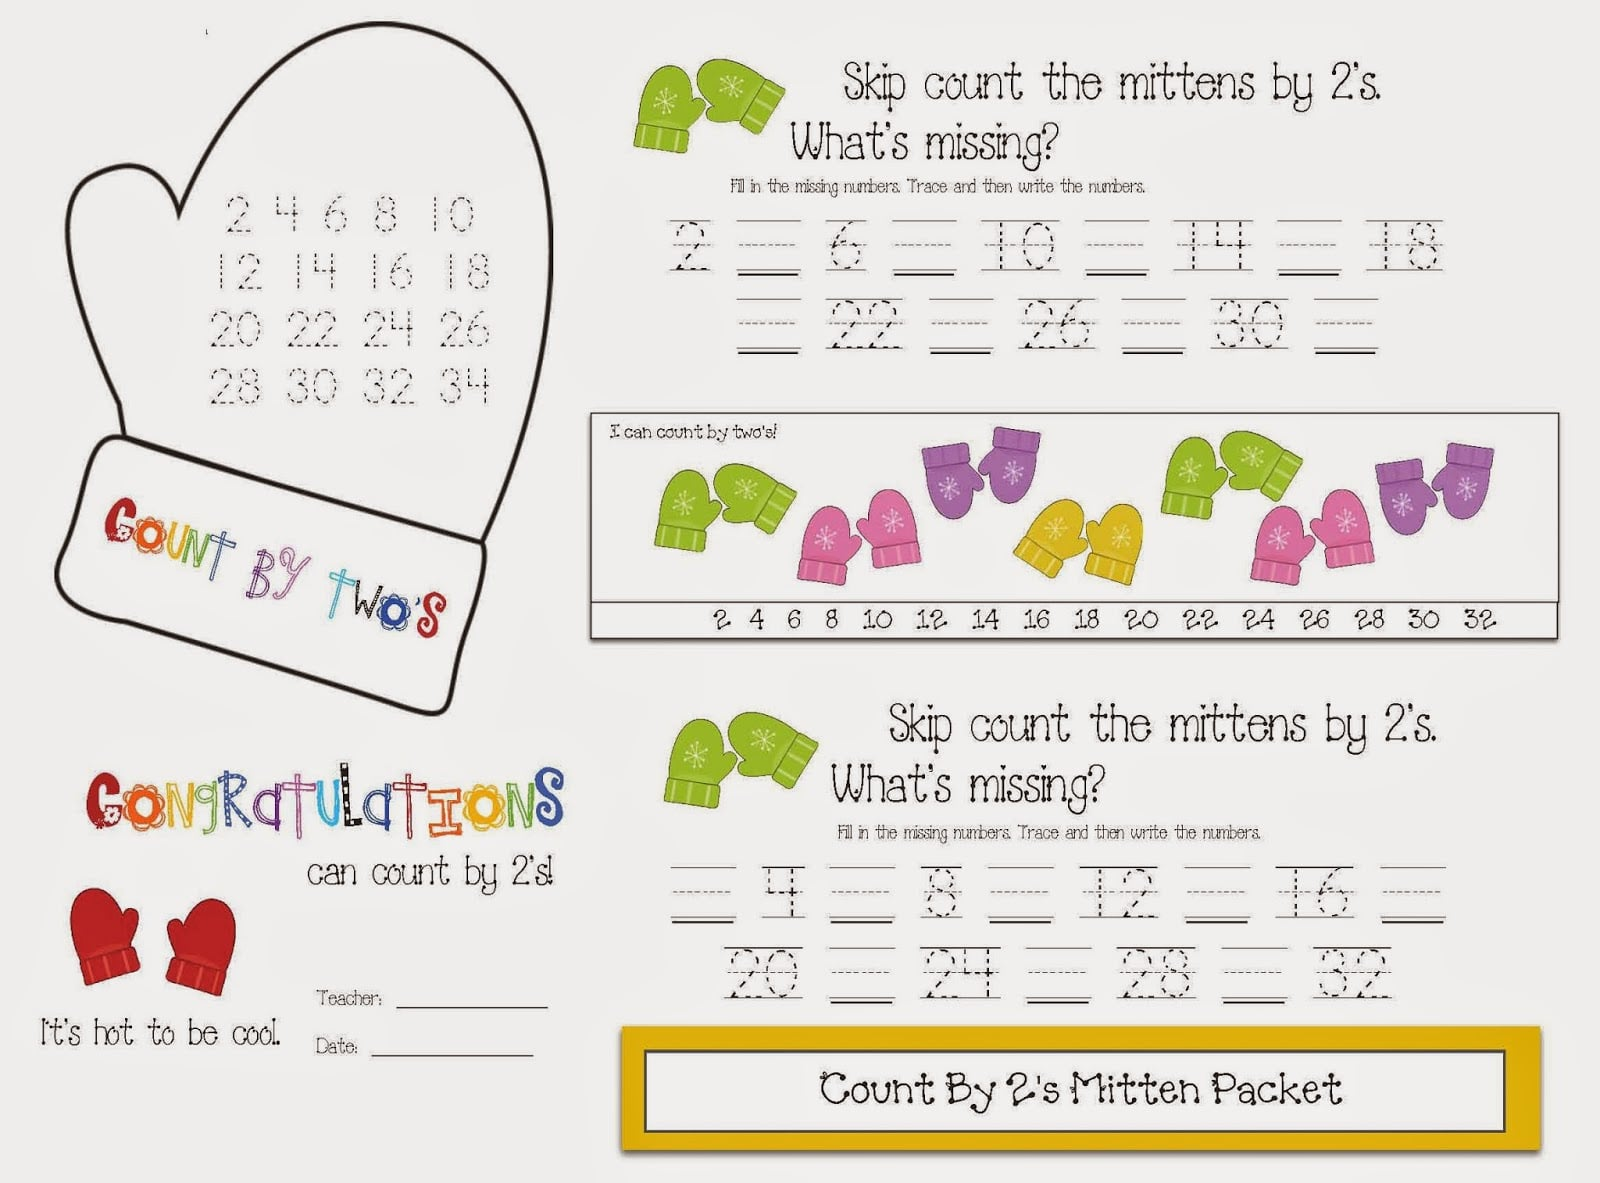 Skip Count By 2s Mitten Packet